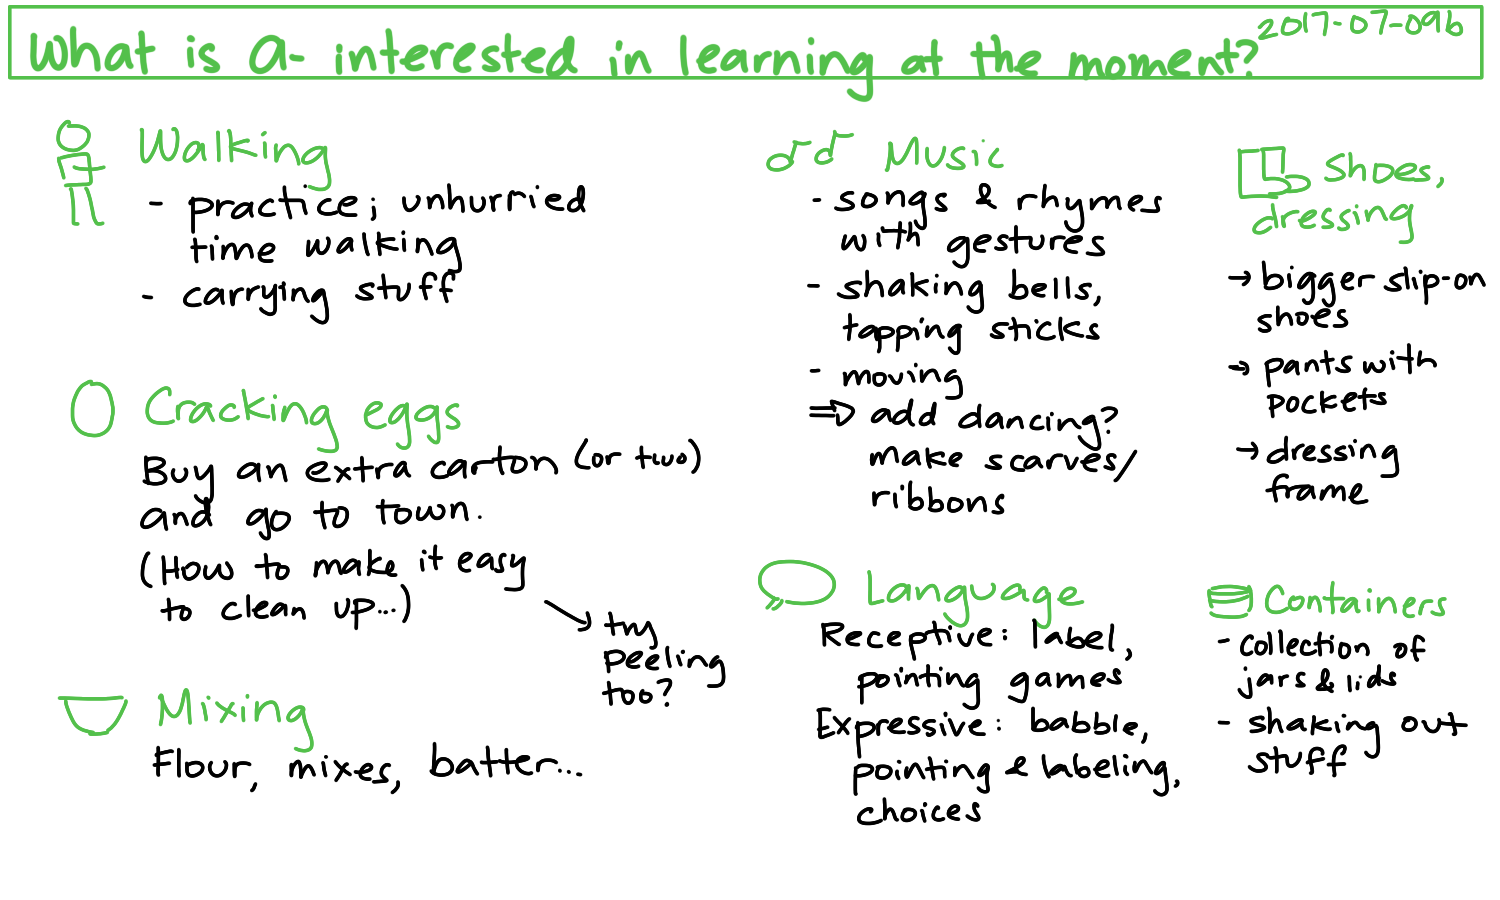 2017-07-09b What is A- interested in learning at the moment #parenting #ece #focus.png